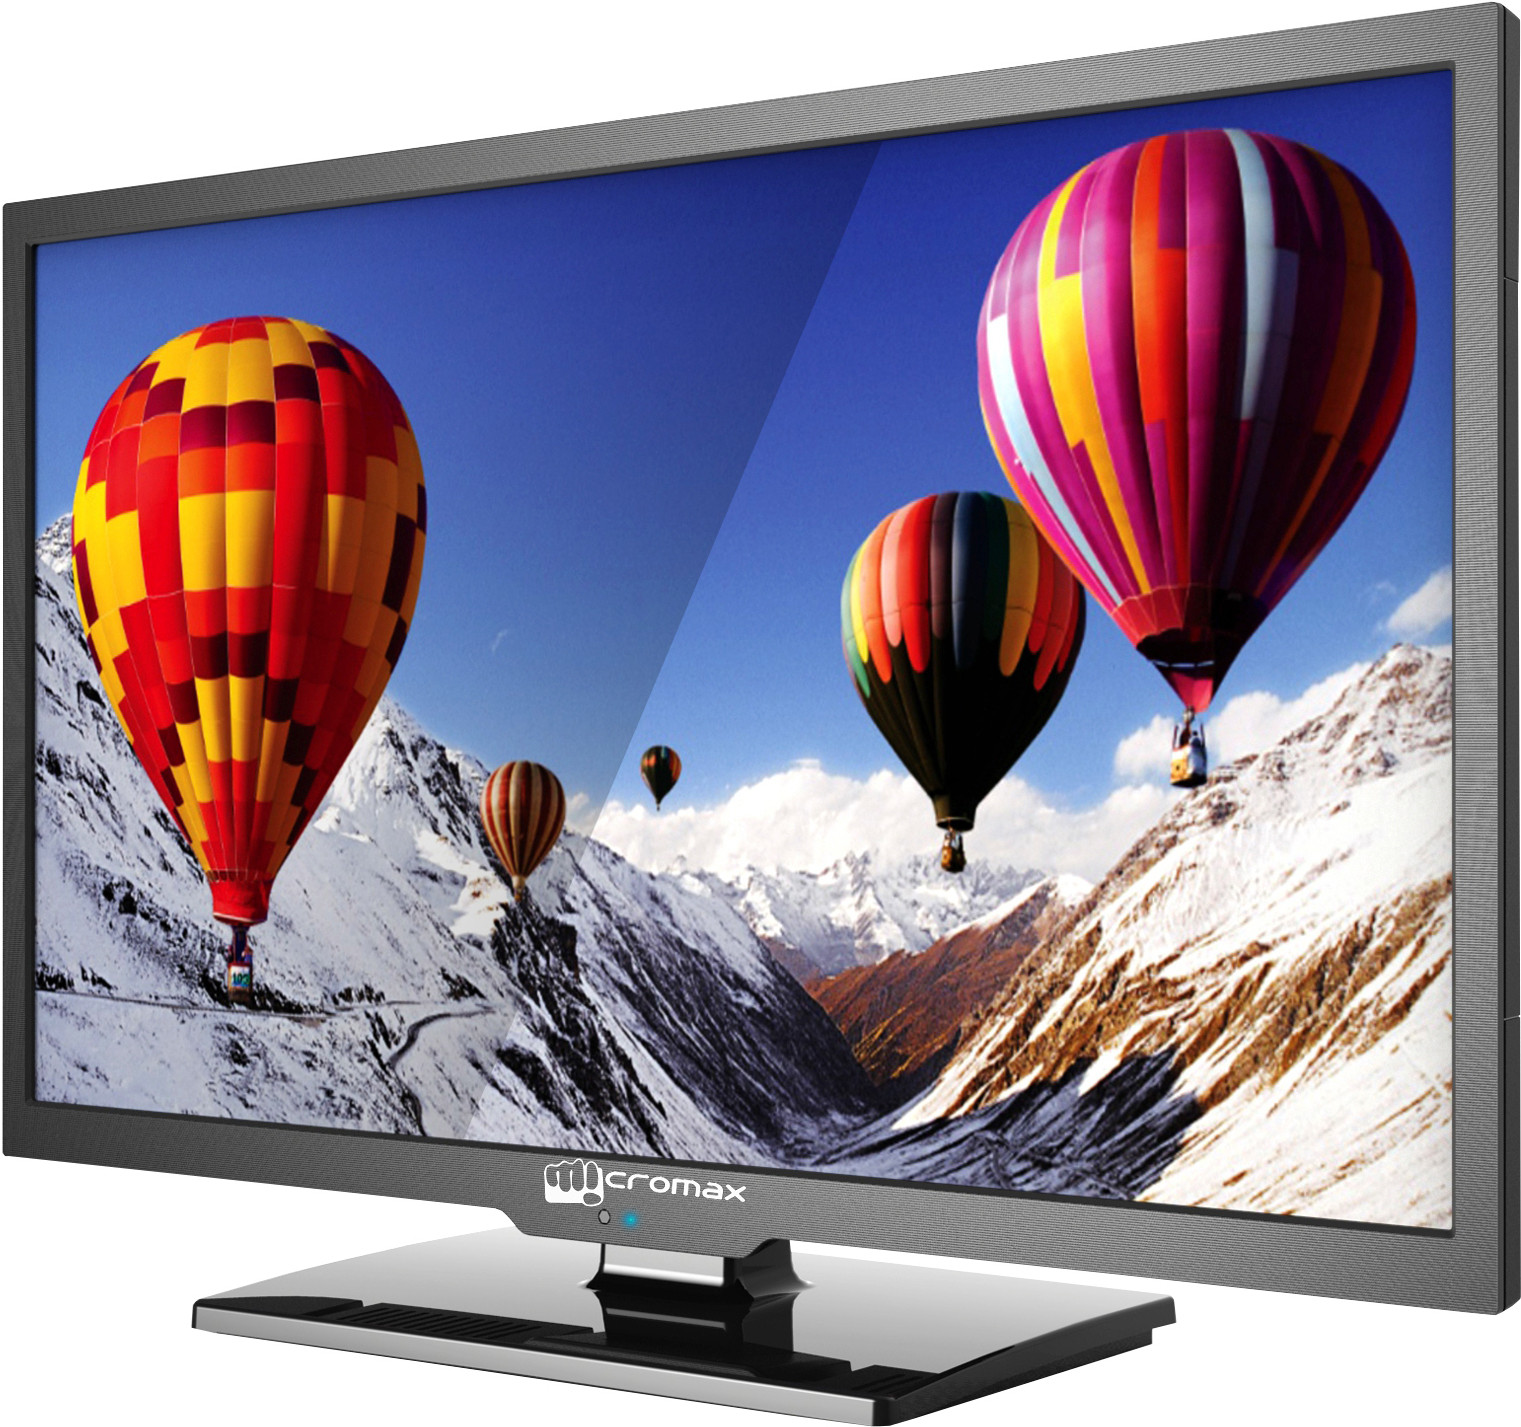 60cm Tv Lg 24 Inch 24lh454a Hd Ready Led Tv Best Price In India Is Rs